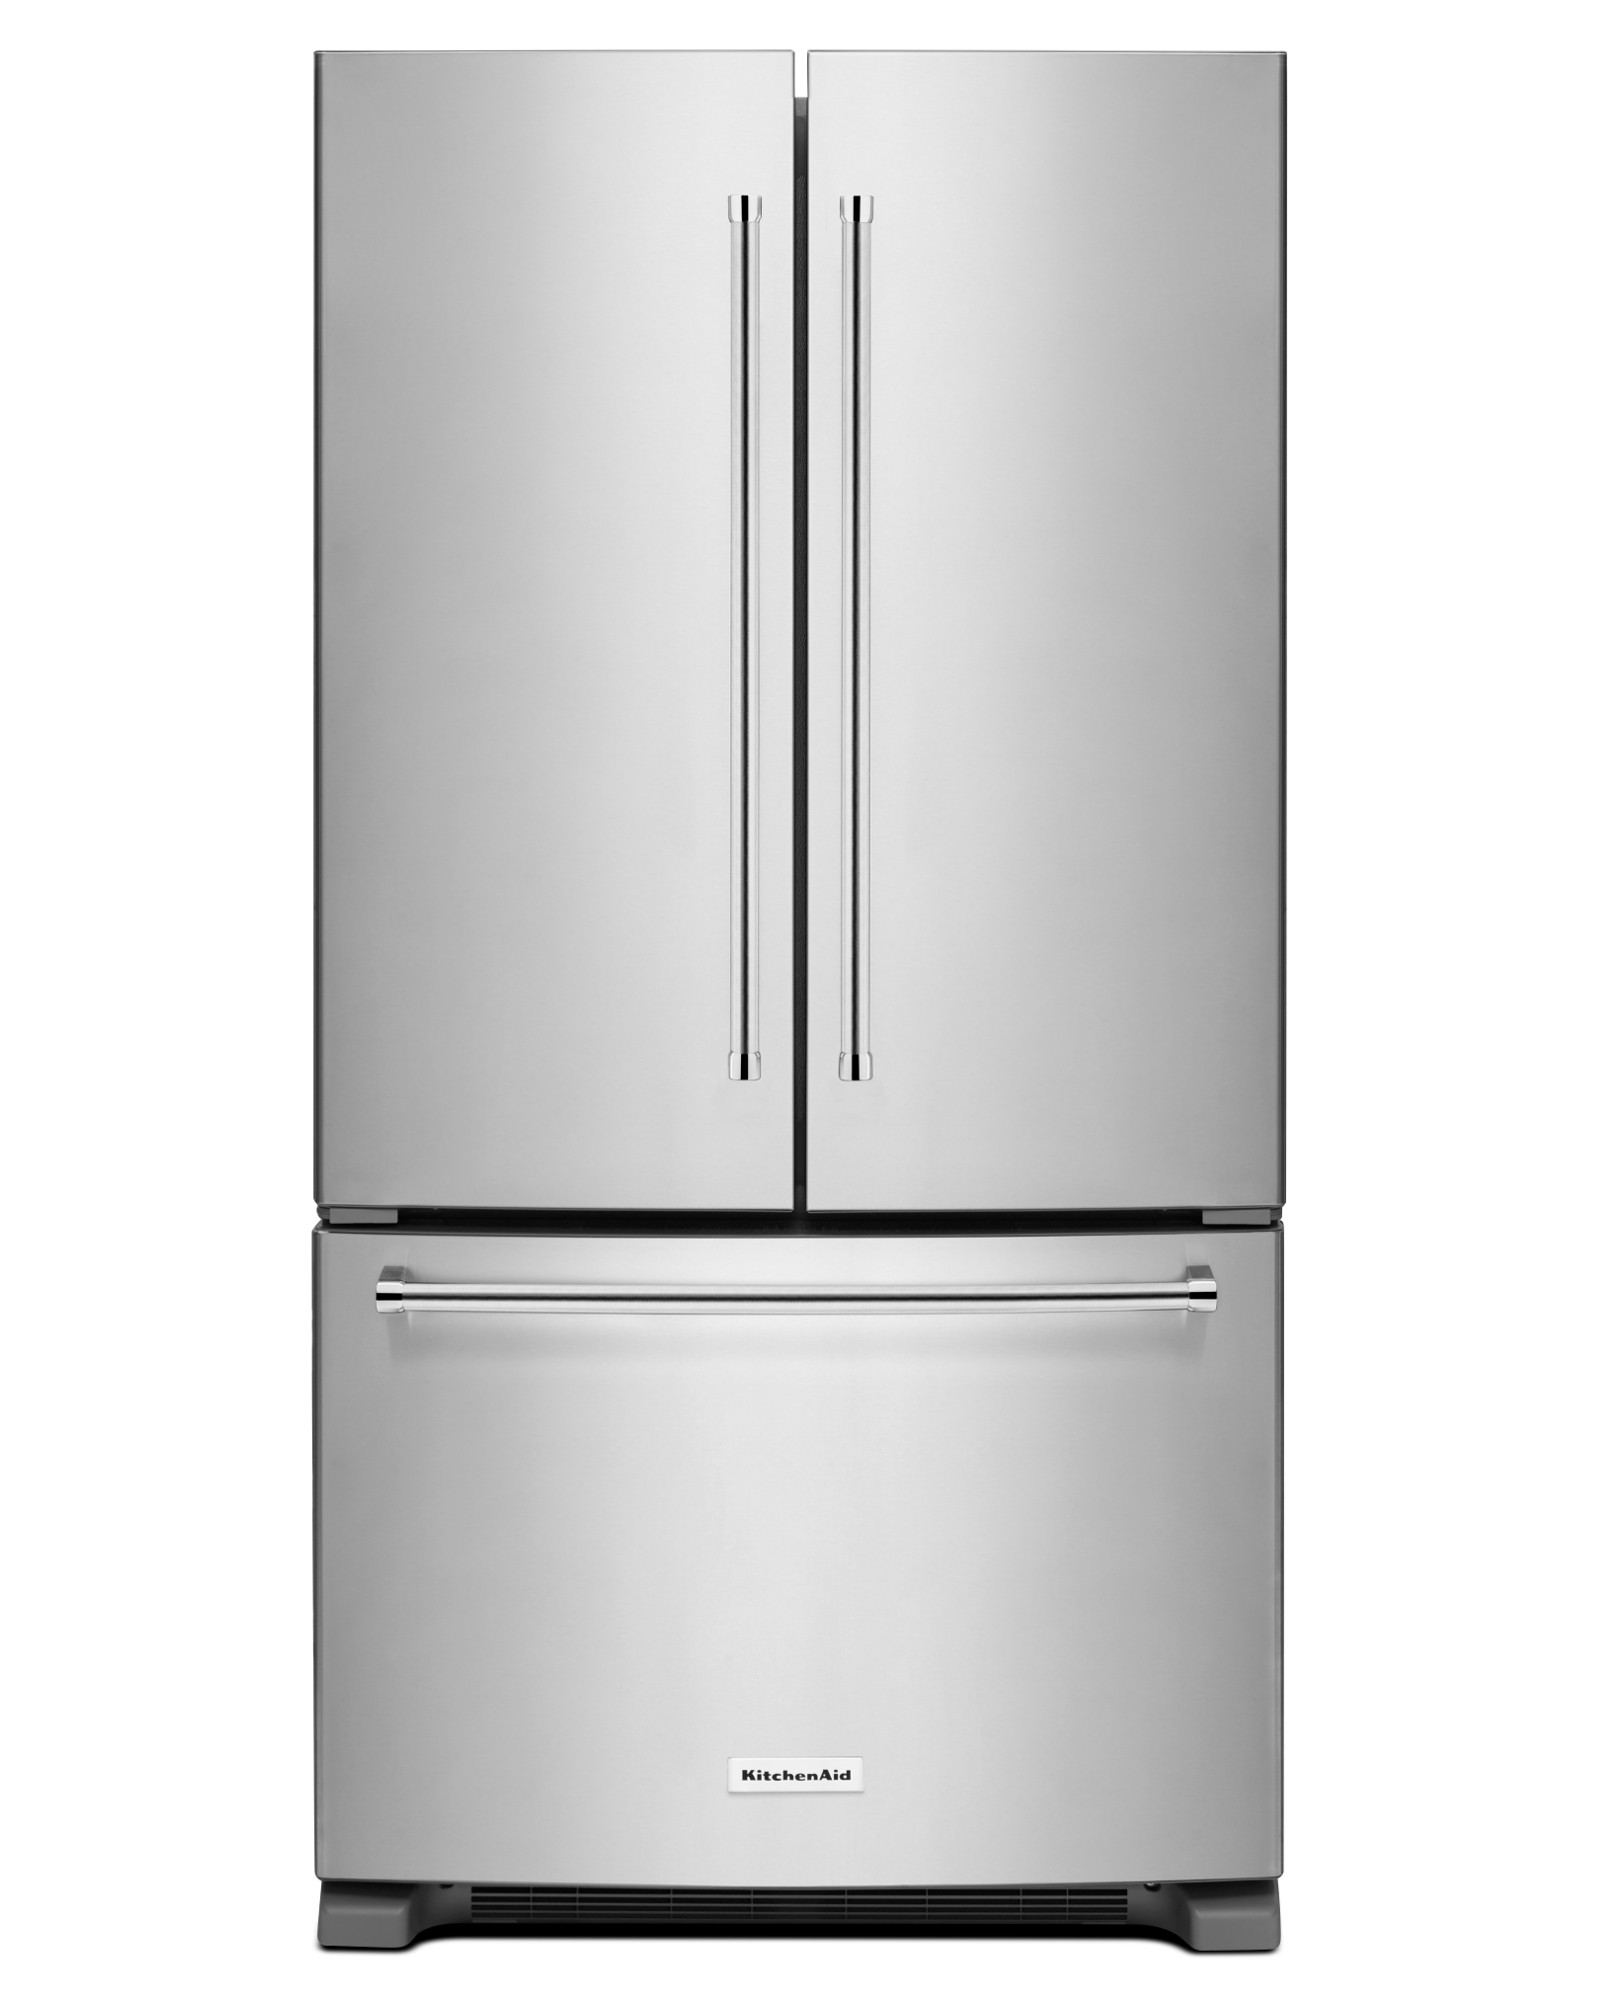 KRFC300ESS-20-cu-ft-French-Door-Refrigerator-Stainless-Steel